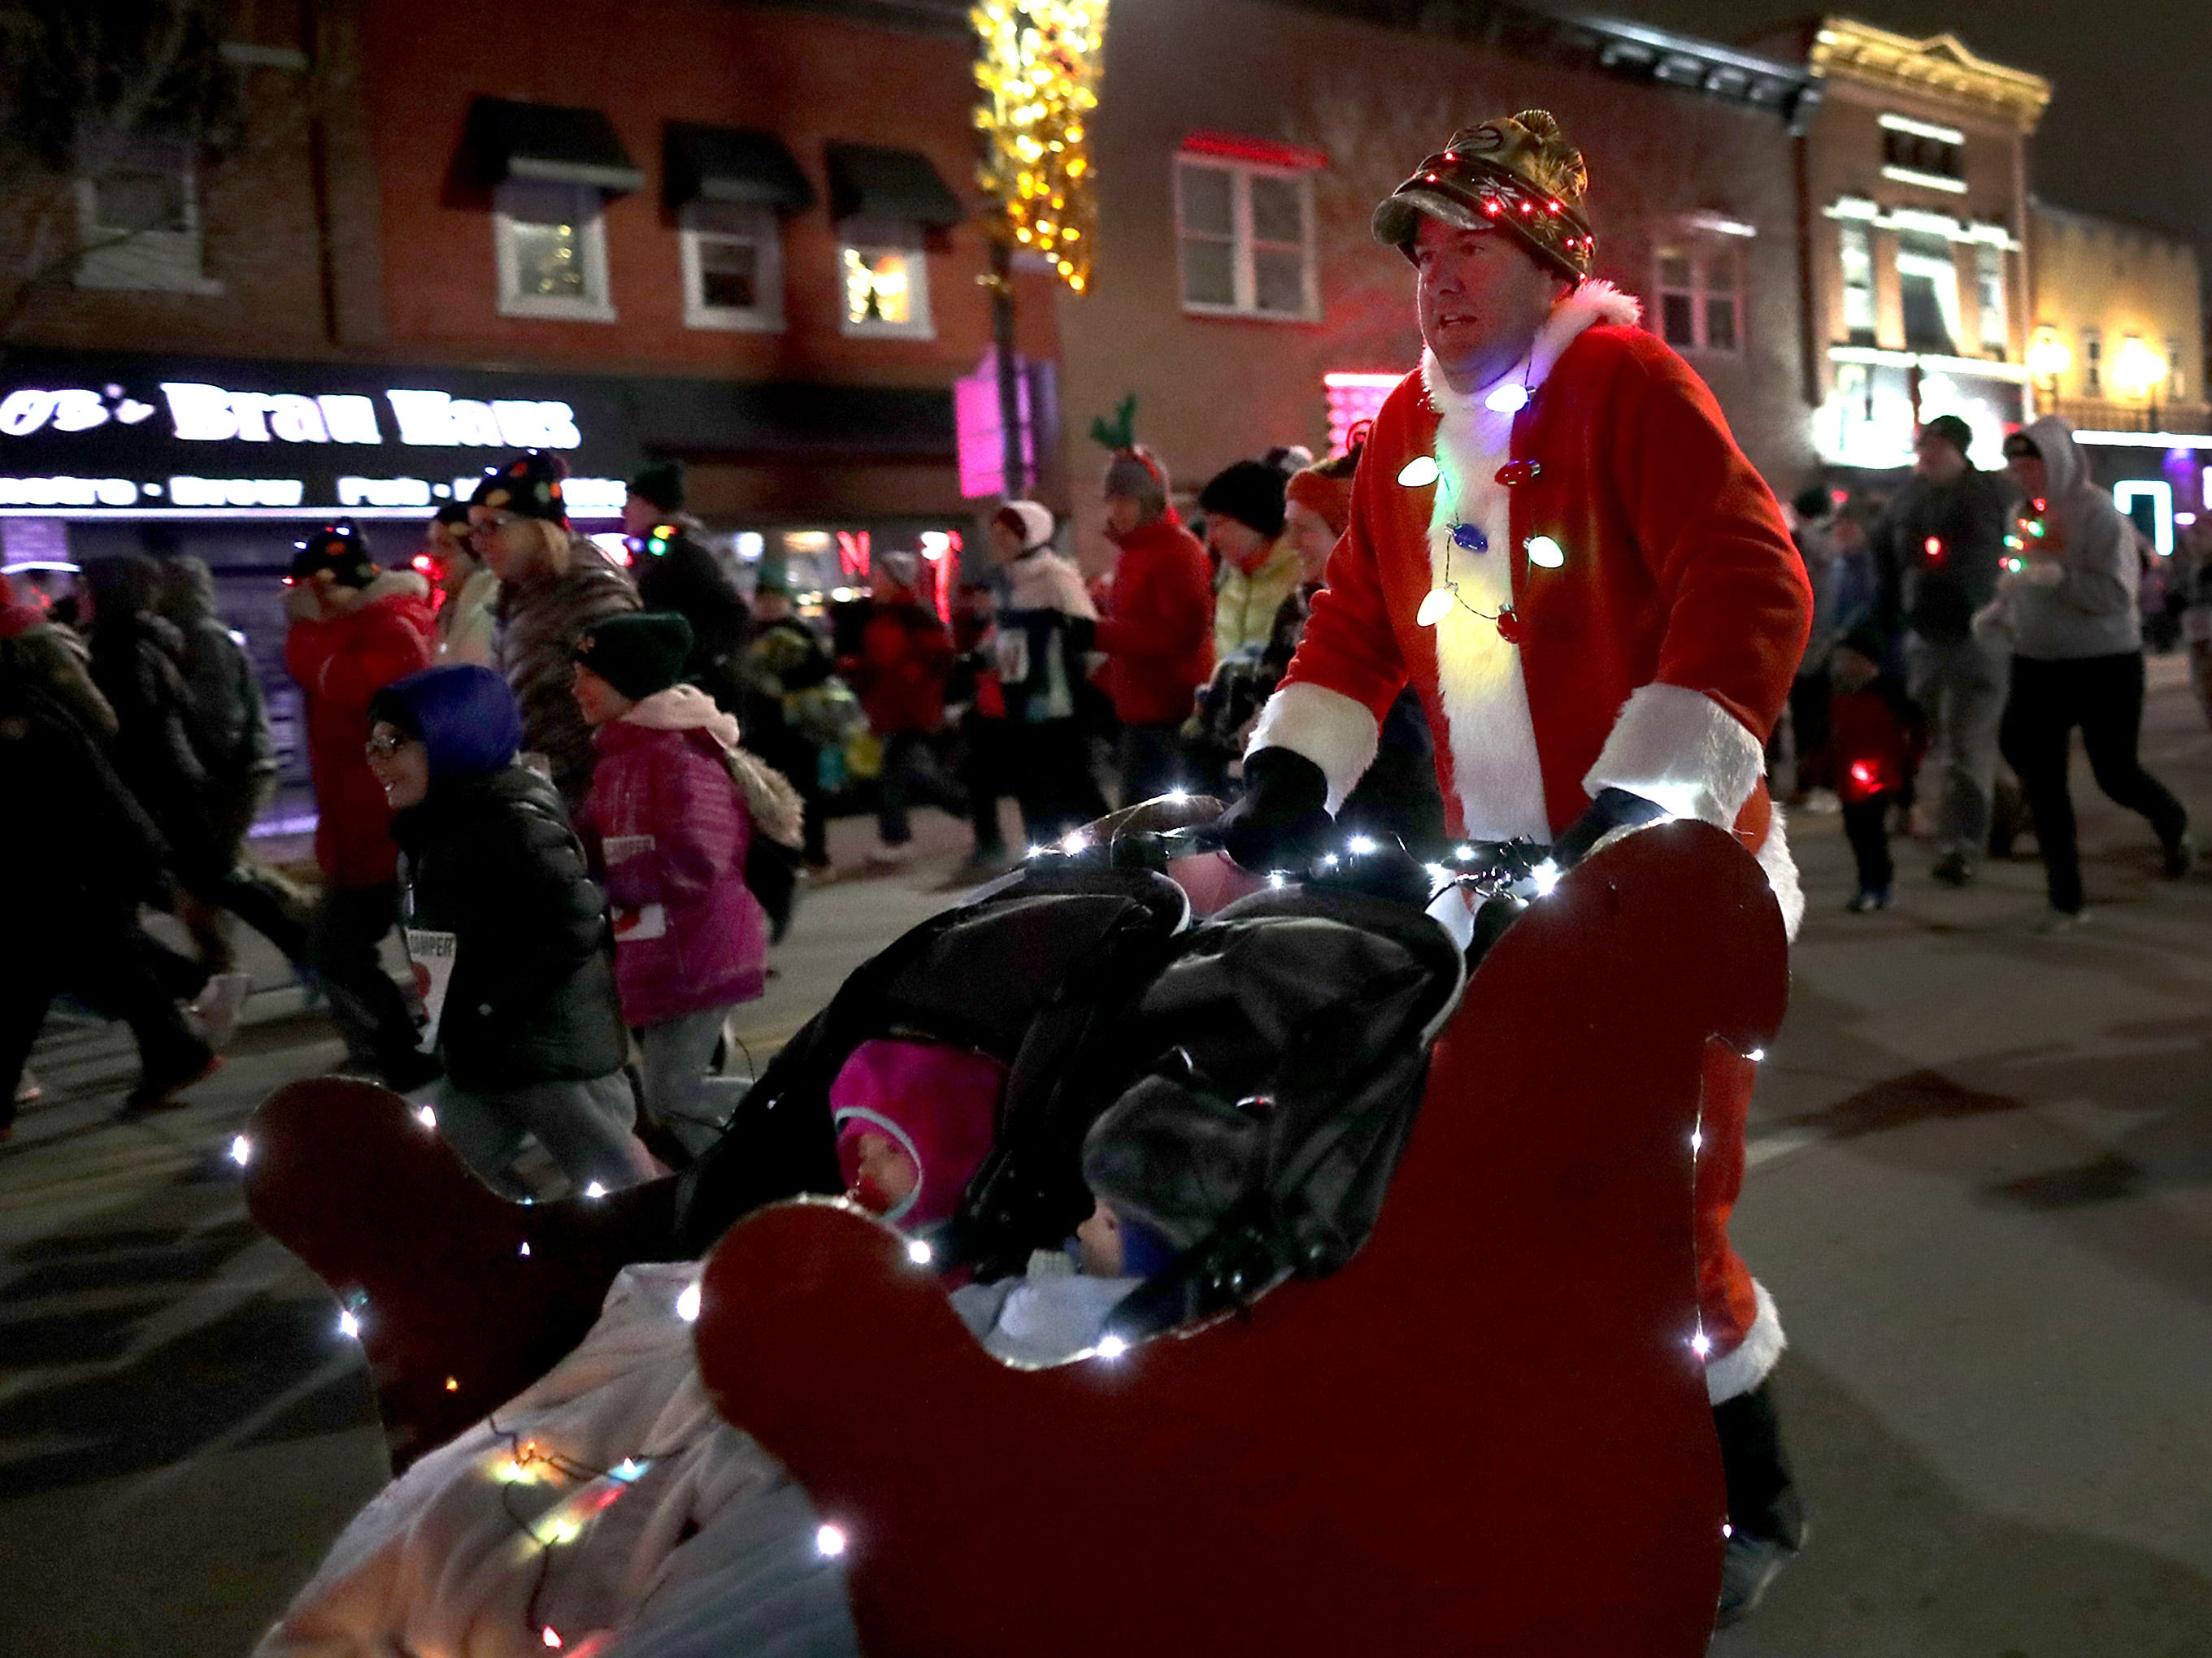 """The Santa Scamper before the 48th Annual Downtown Appleton Christmas Parade on Tuesday, Nov. 20, 2018 in Appleton, Wis. This year's theme was """"Home for the Holidays."""" Wm. Glasheen/USA TODAY NETWORK-Wisconsin."""